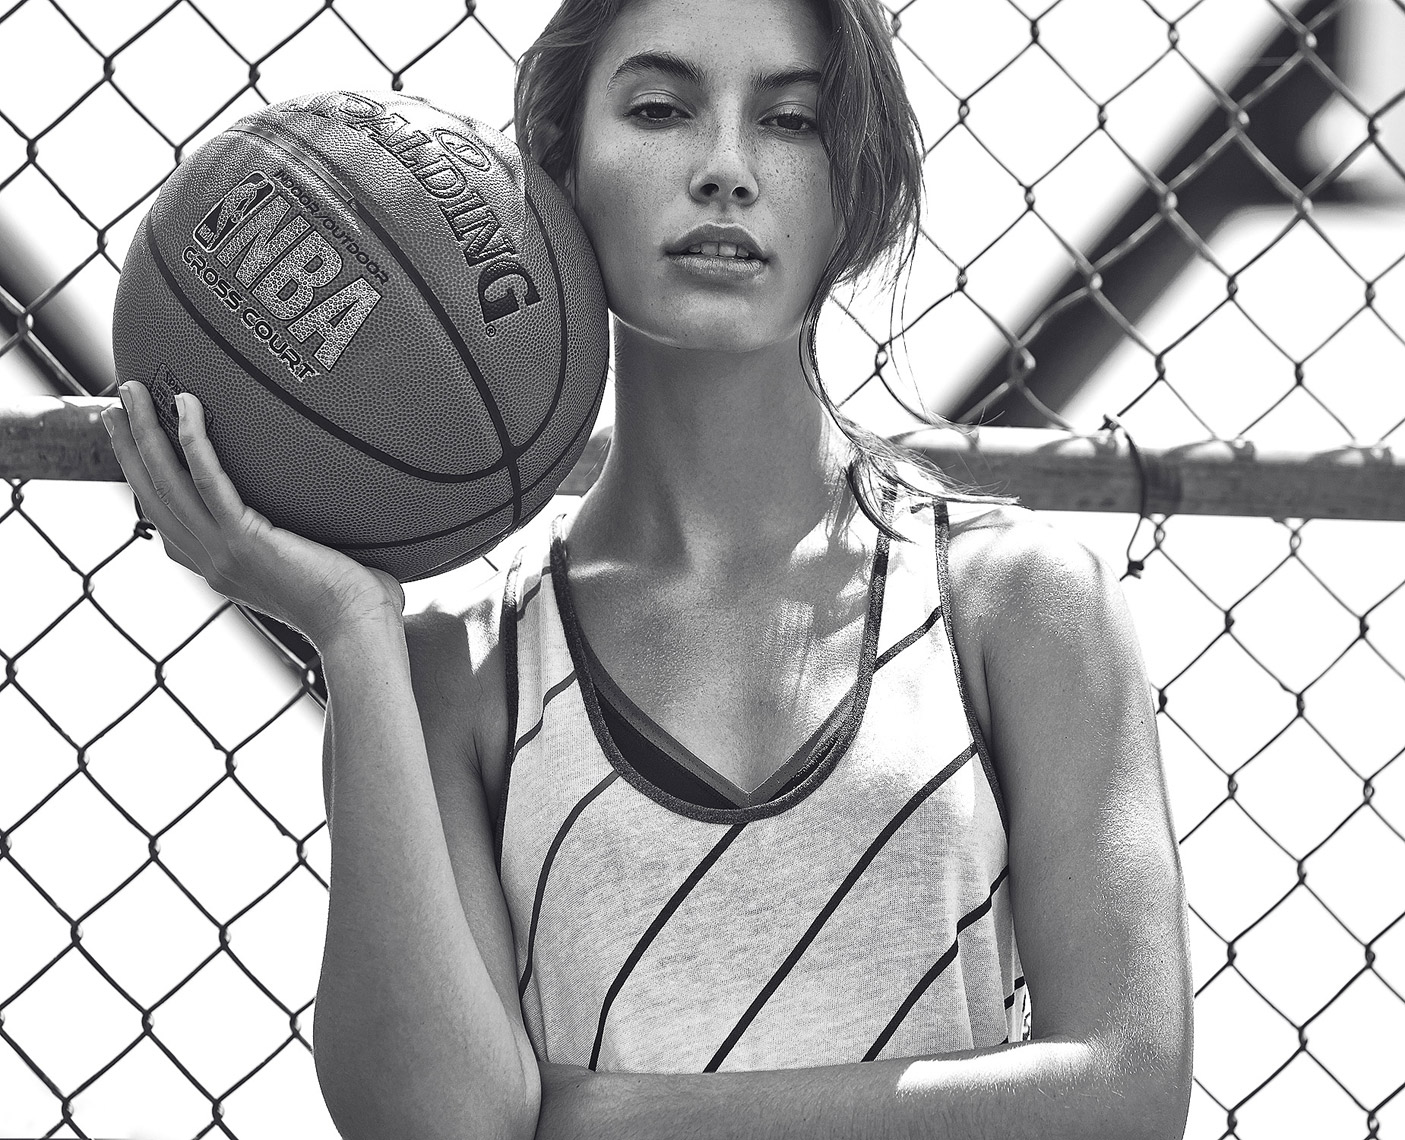 SHAPE-Valen-Basketball-2145-B&W